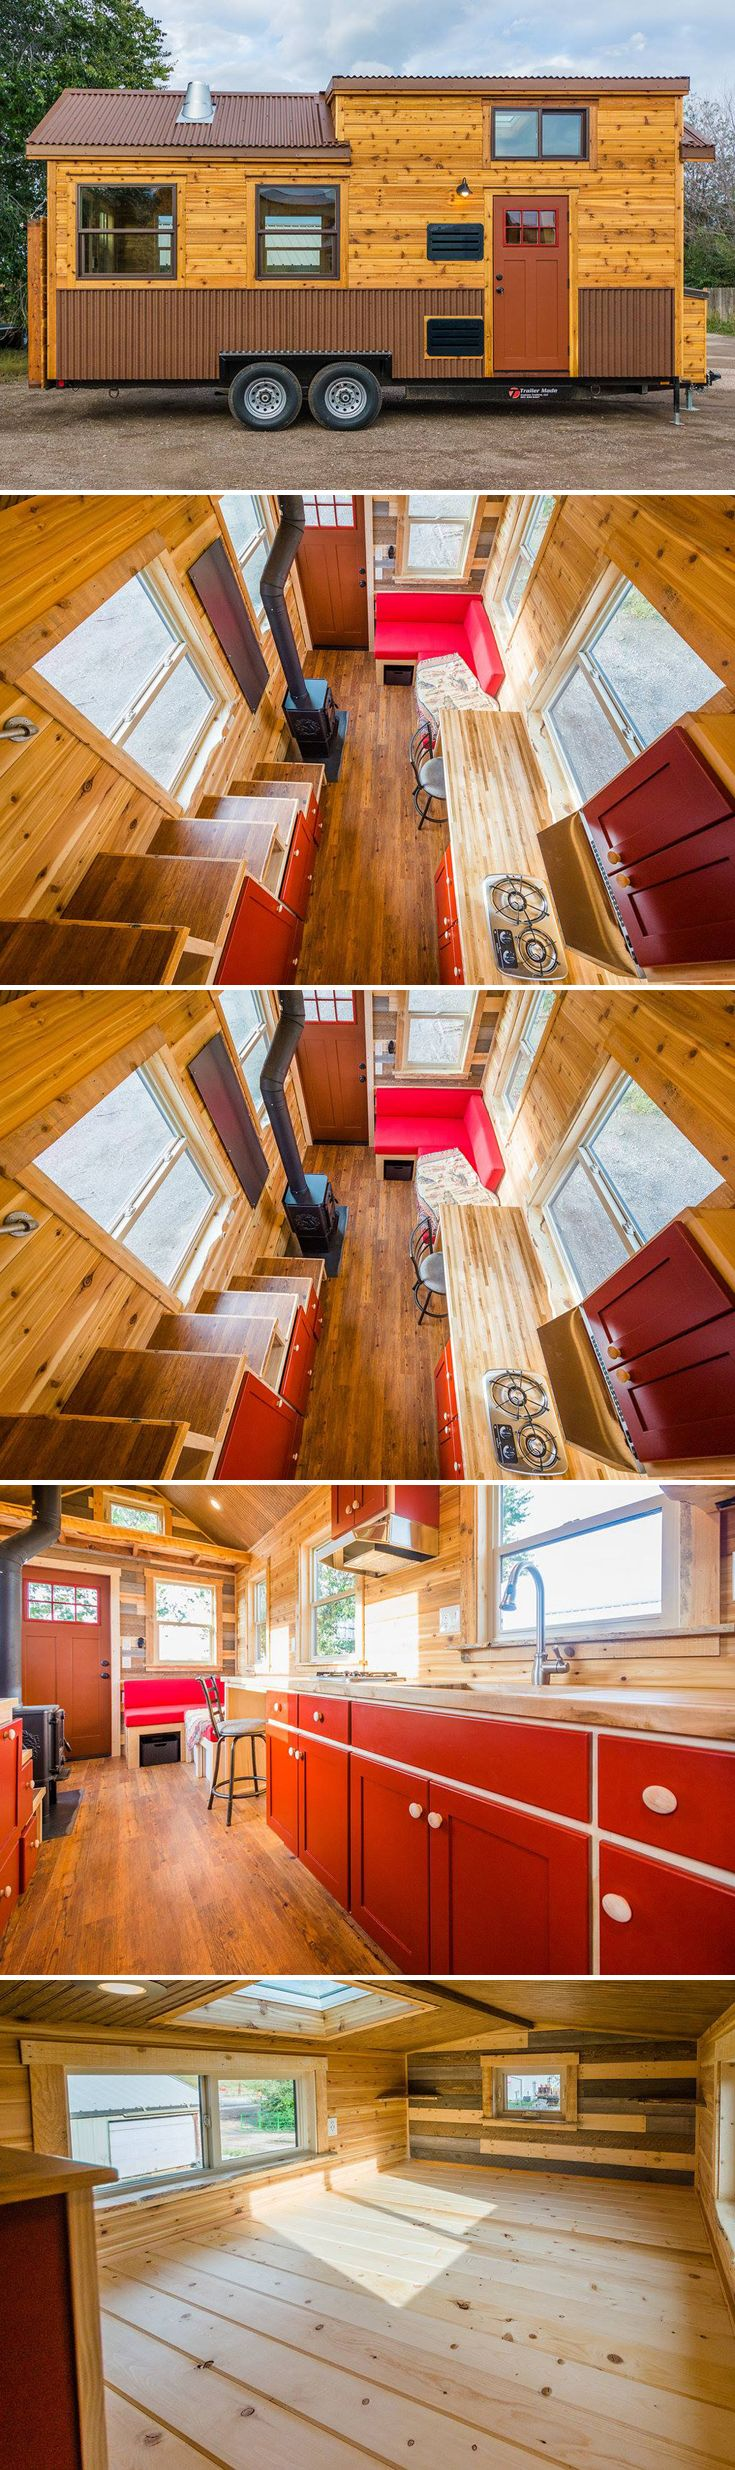 Fully equipped for living off-grid in the Colorado mountains is this 22' tiny house on wheels, complete with solar power system and 70-gallon water tank.